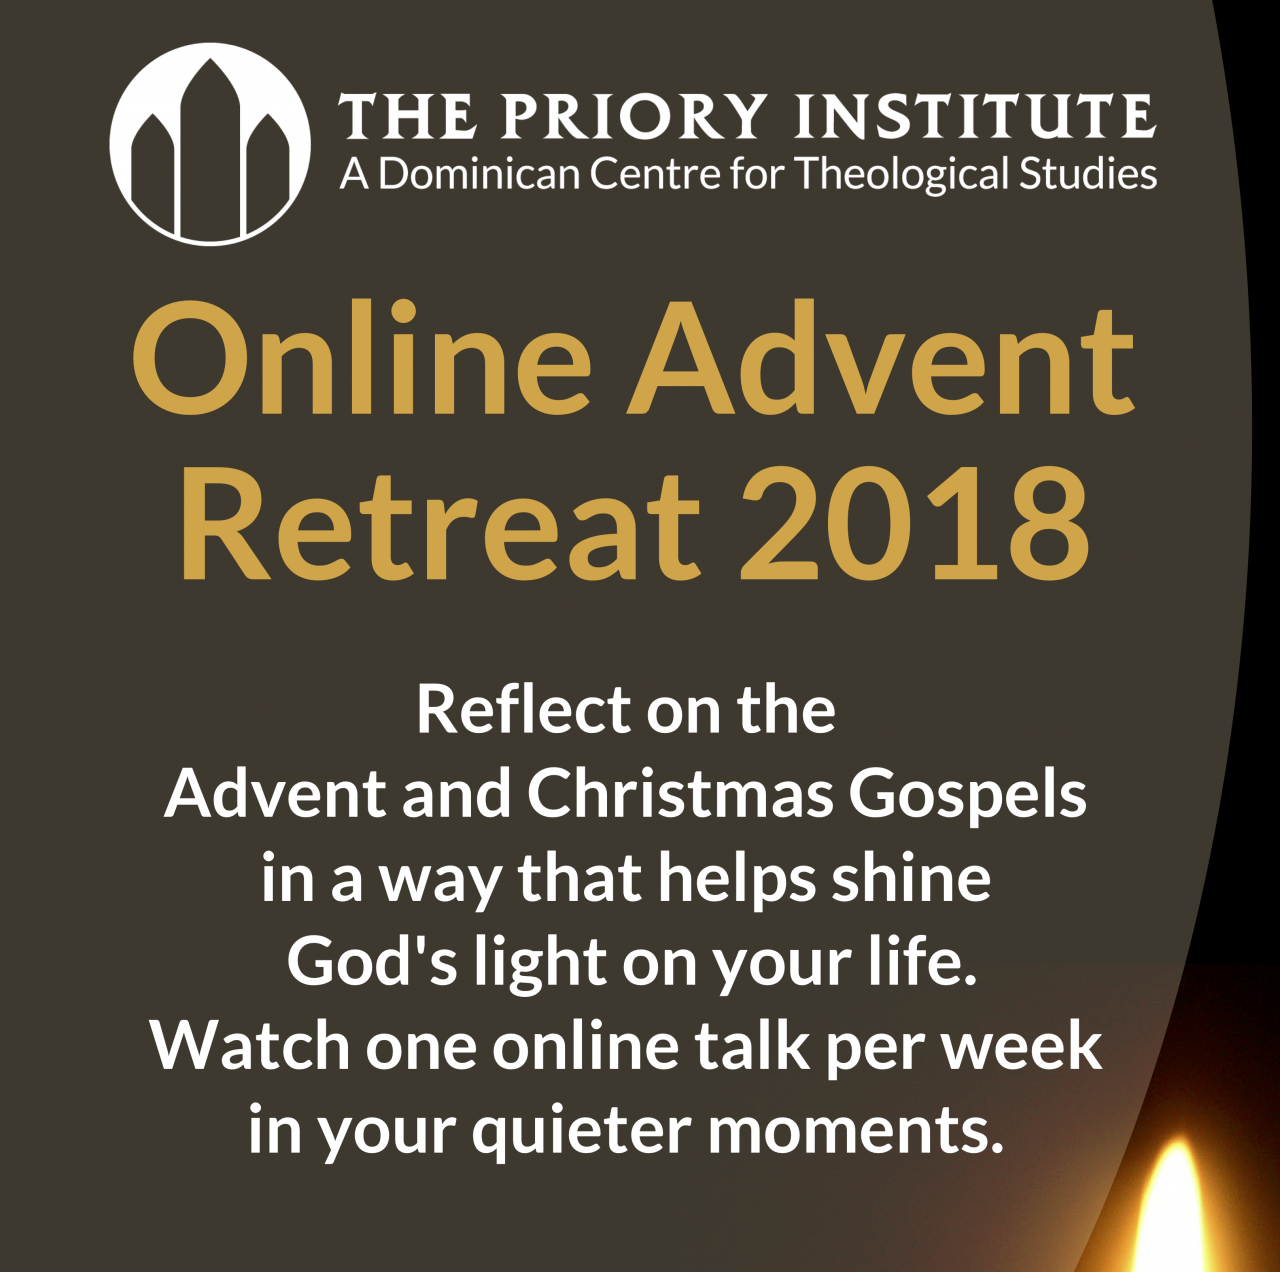 Online Advent Retreat hosted by the Priory Institute, starts Sunday 2nd December 2018